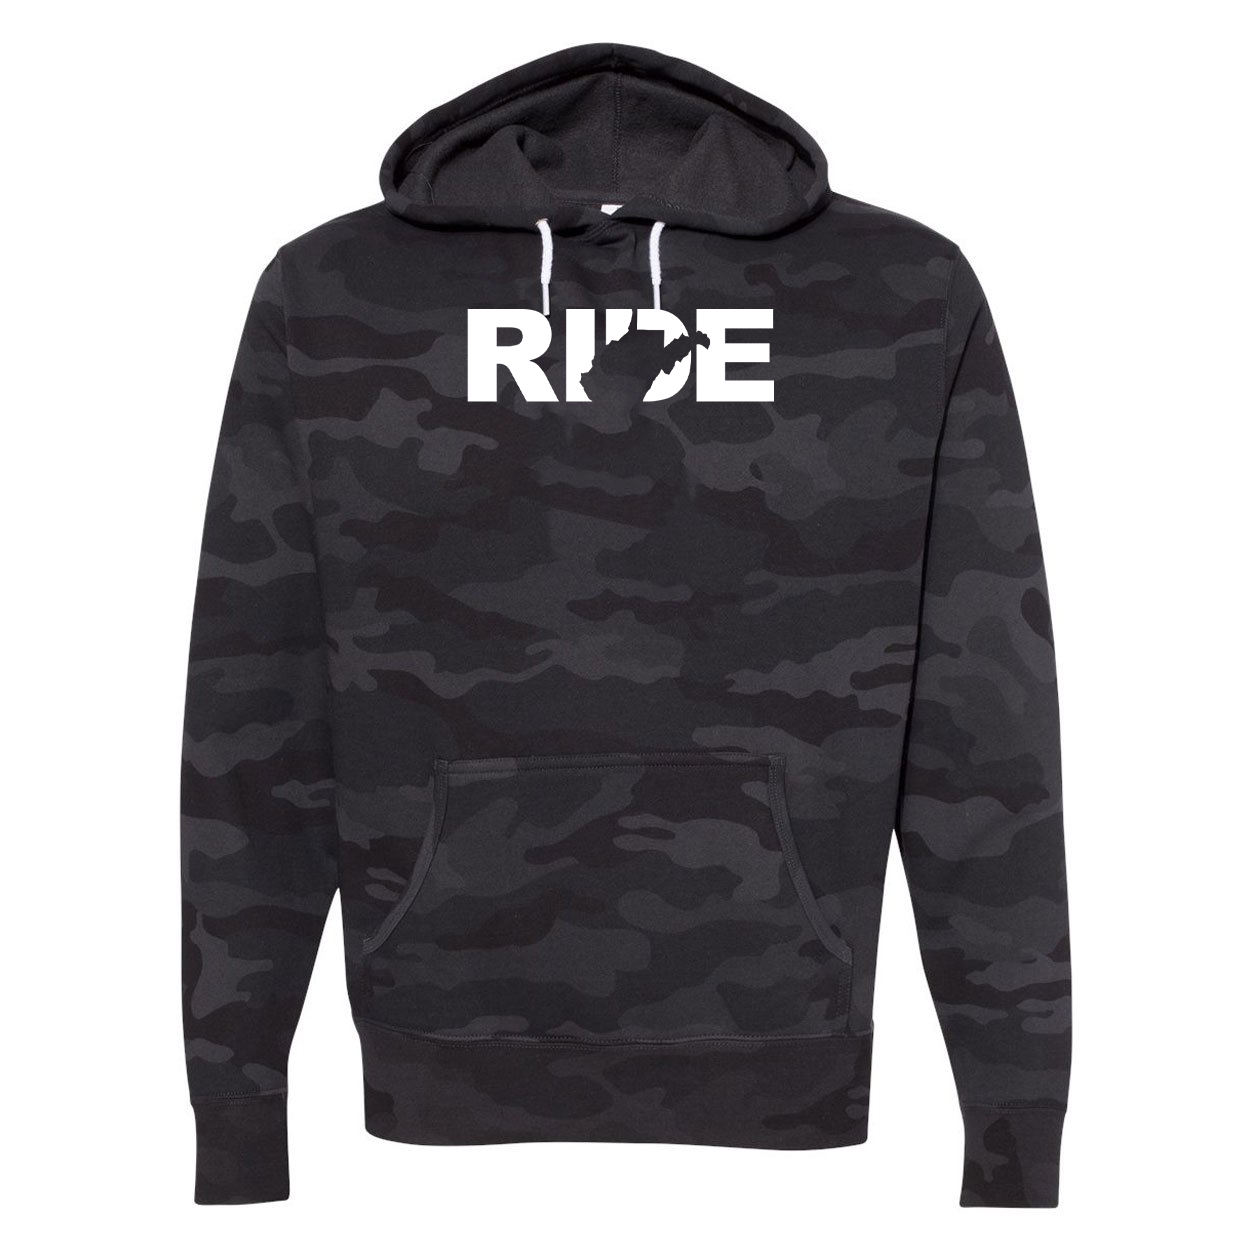 Ride West Virginia Classic Unisex Hooded Sweatshirt Black Camo (White Logo)